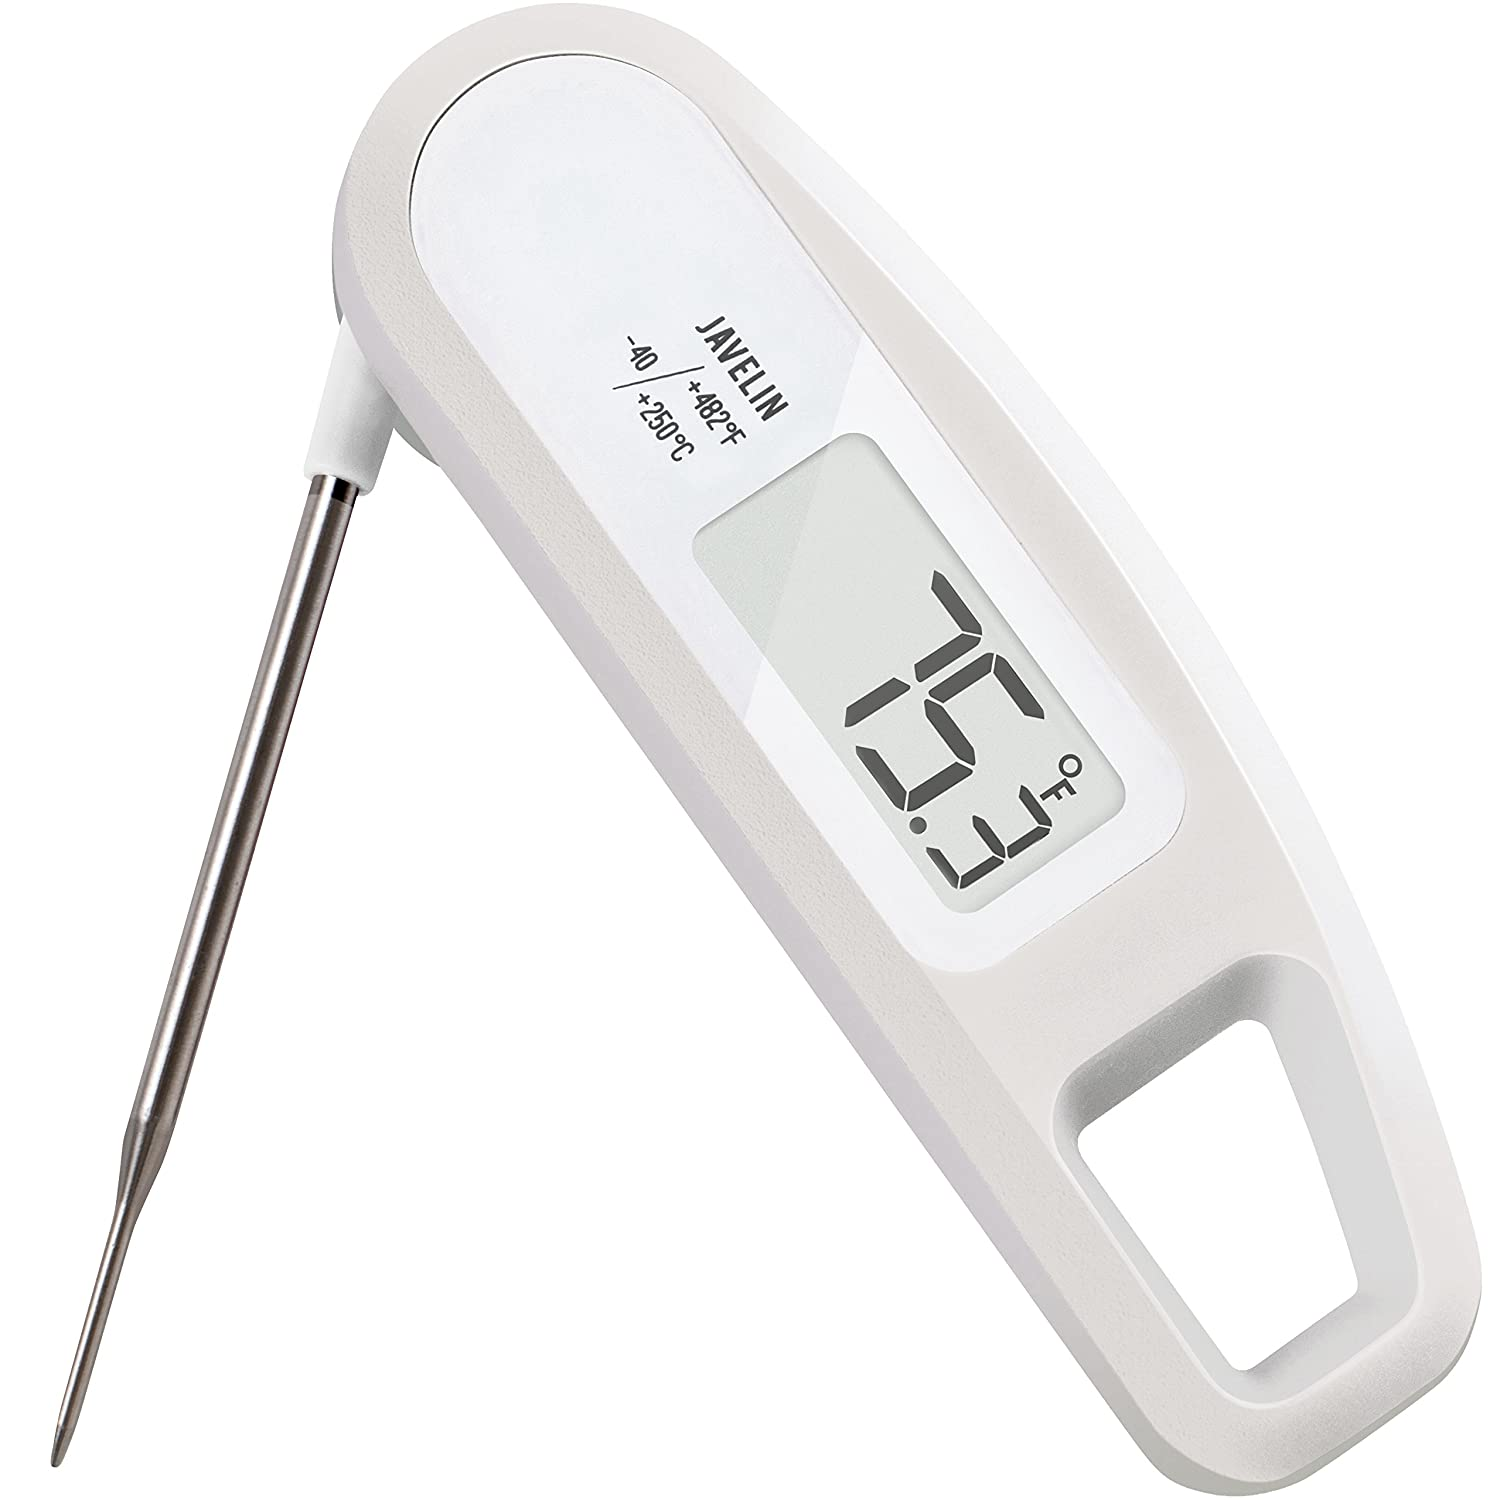 Ultra Fast & Accurate, Splash-Resistant, High-Performance Digital Food/BBQ Thermometer - Lavatools Thermowand® (White) PT12